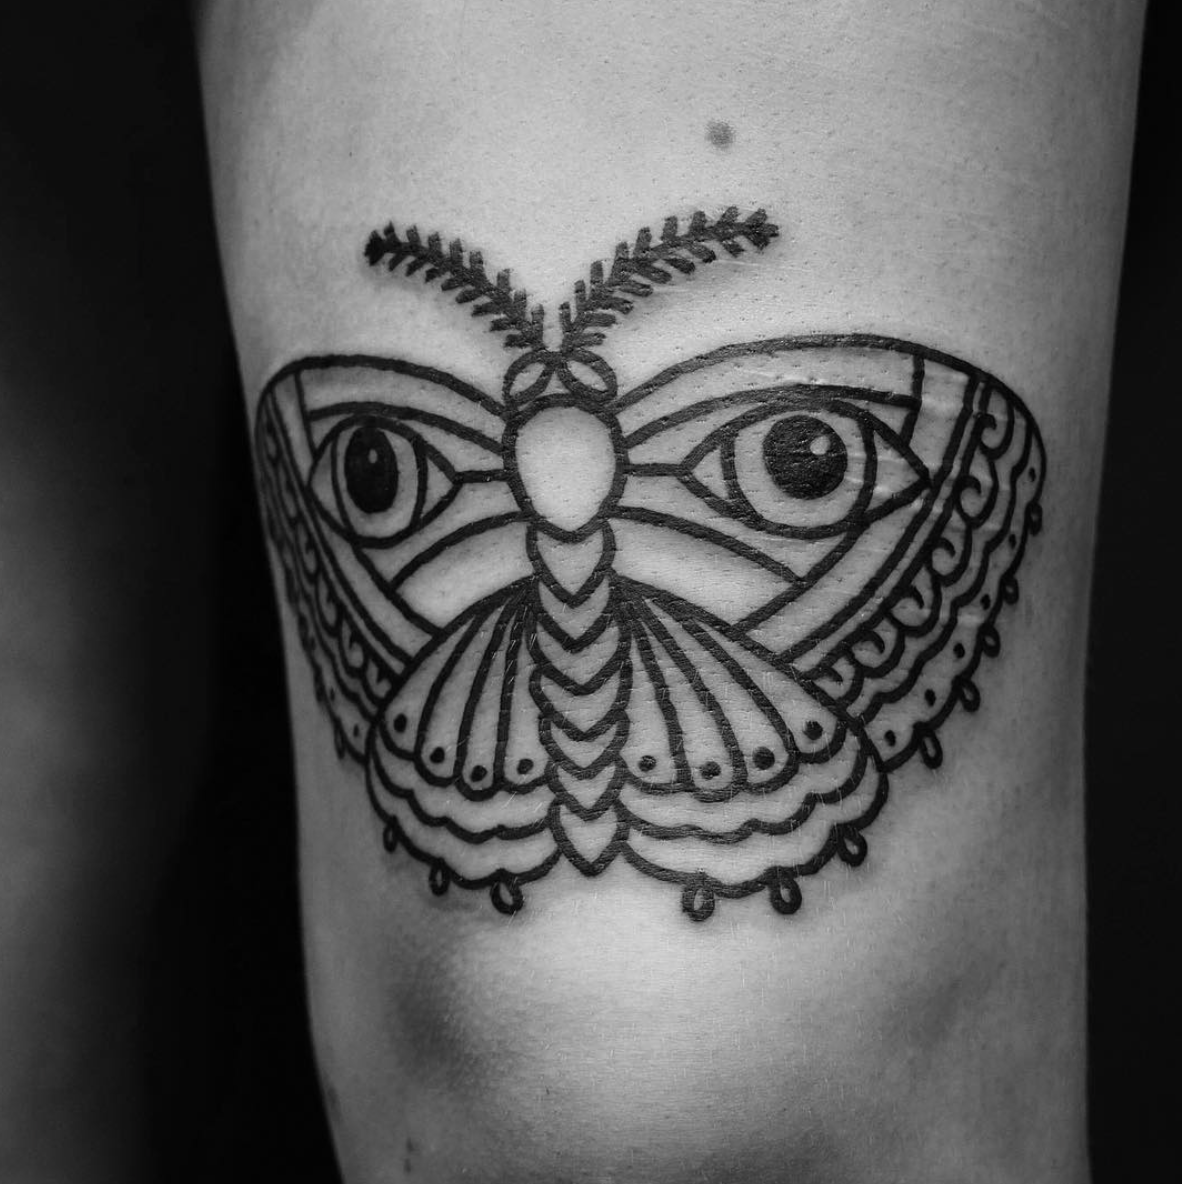 Blackwork Bold Lines Ornamental Traditional Butterfly Tattoo Follow Me On My Blog To Join All My Tips And Tricks About Tattoos